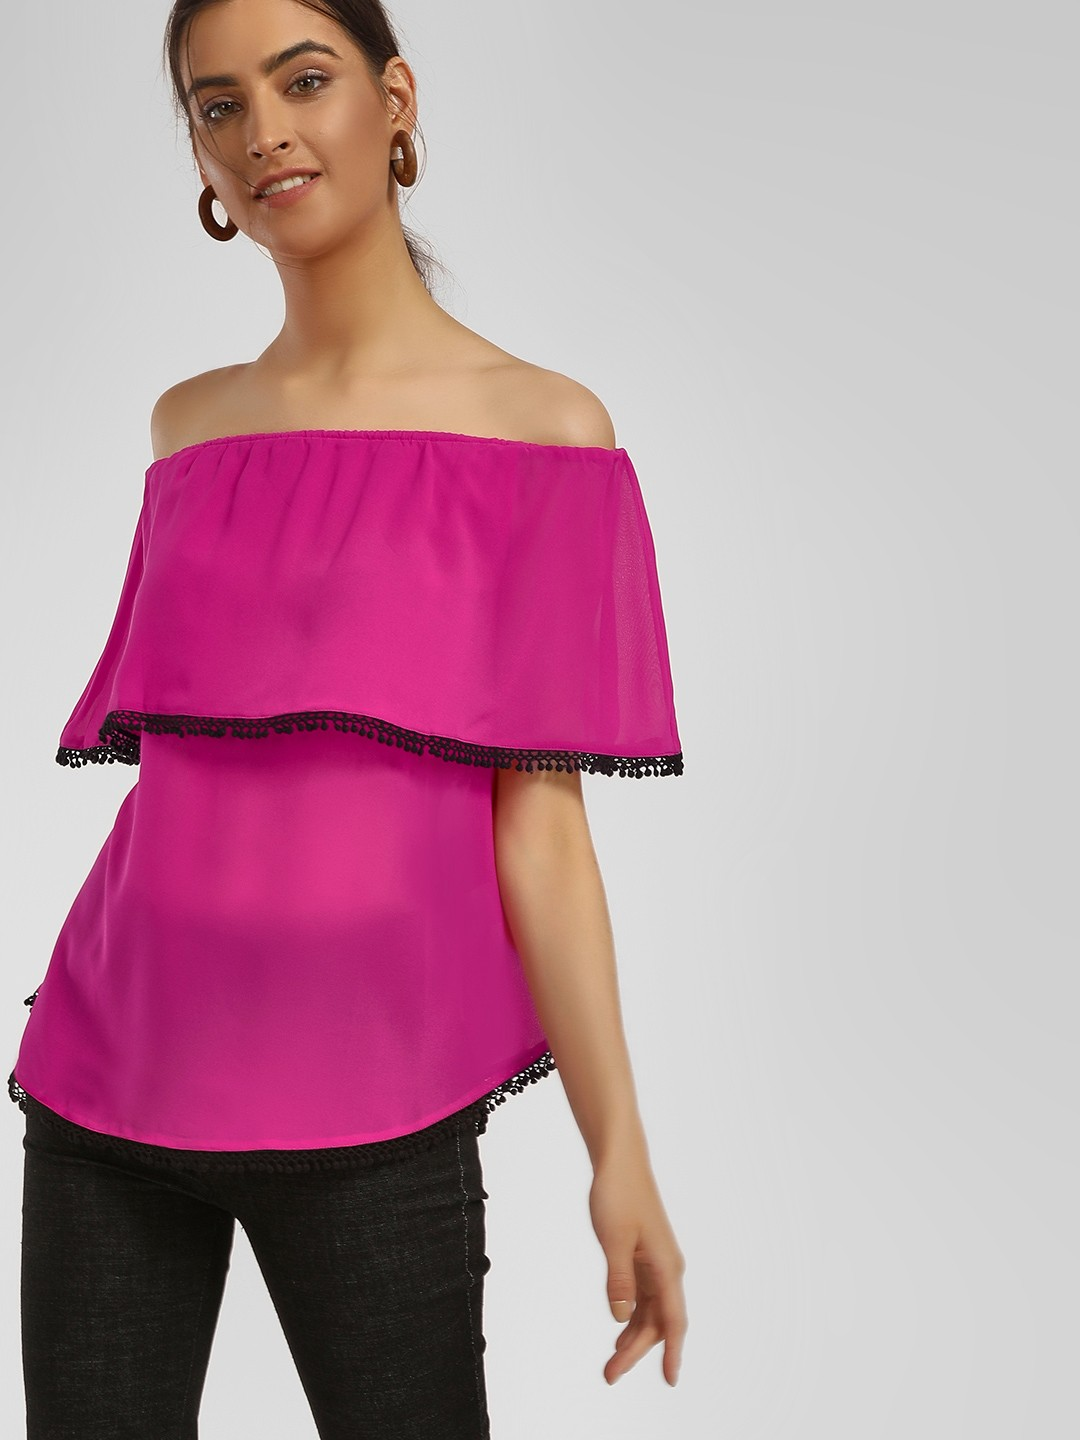 MIWAY Pink Pom-Pom Detail Off-Shoulder Top 1